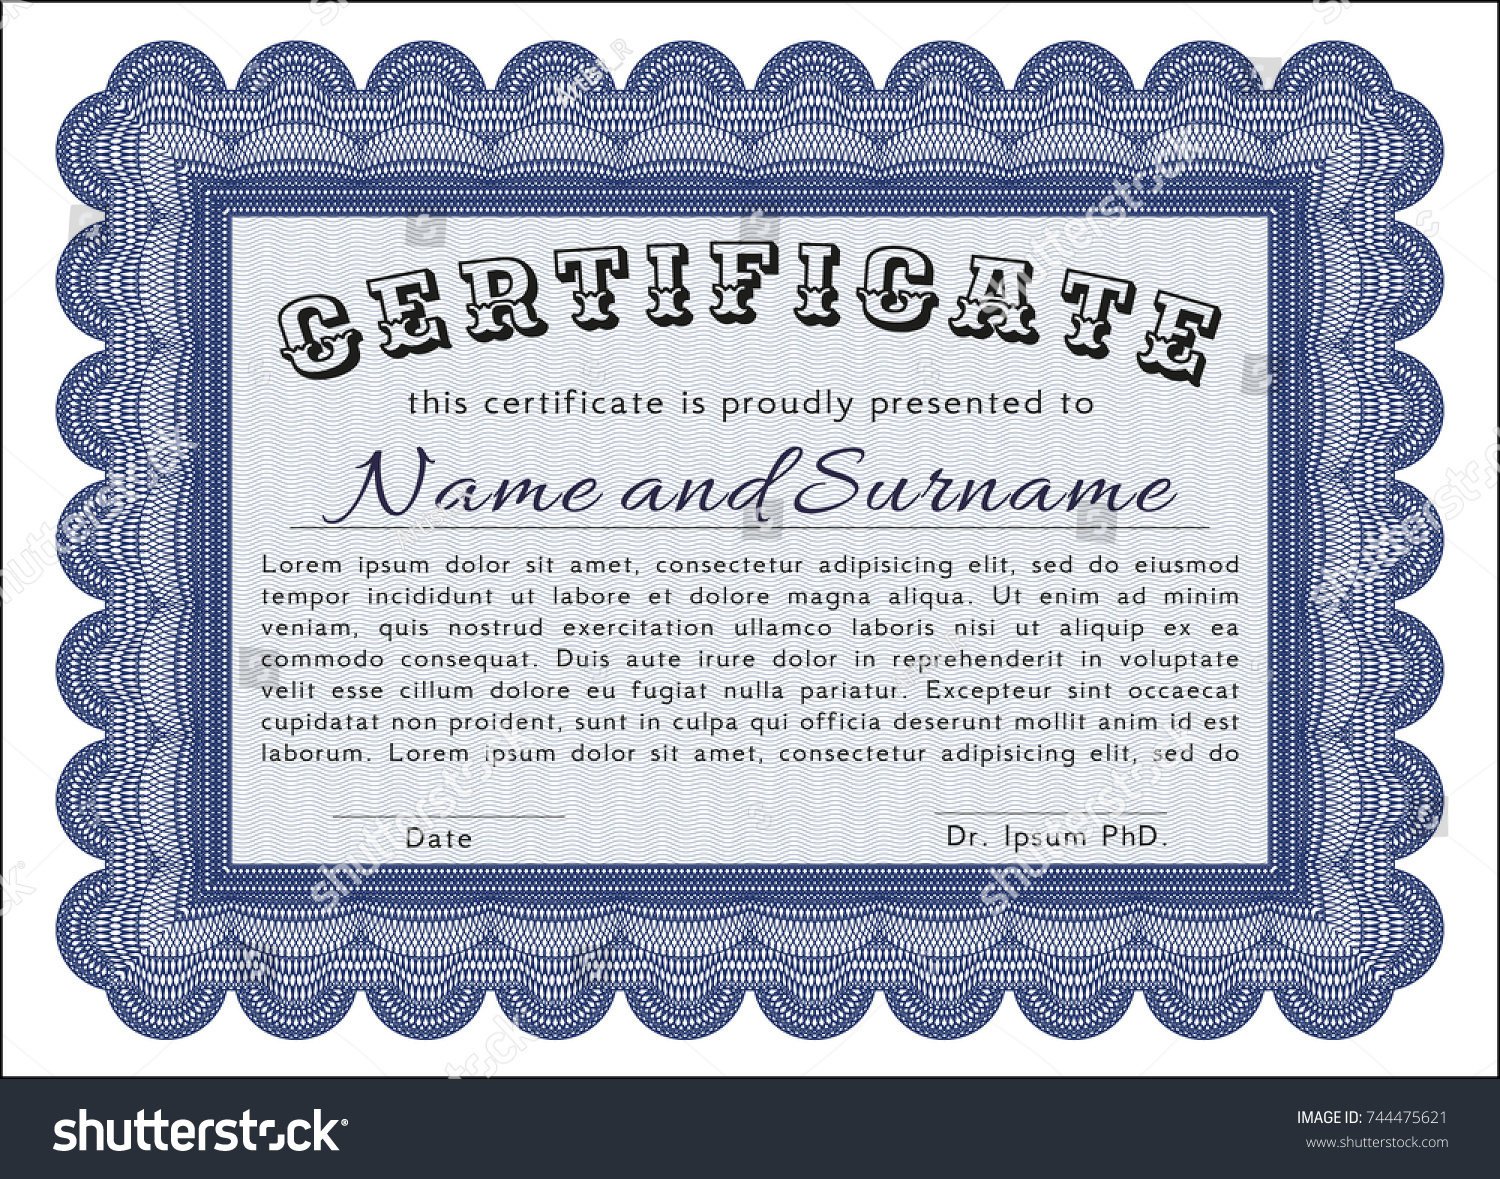 Blue certificate template customizable easy edit stock vector blue certificate template customizable easy to edit and change colors with great quality xflitez Images